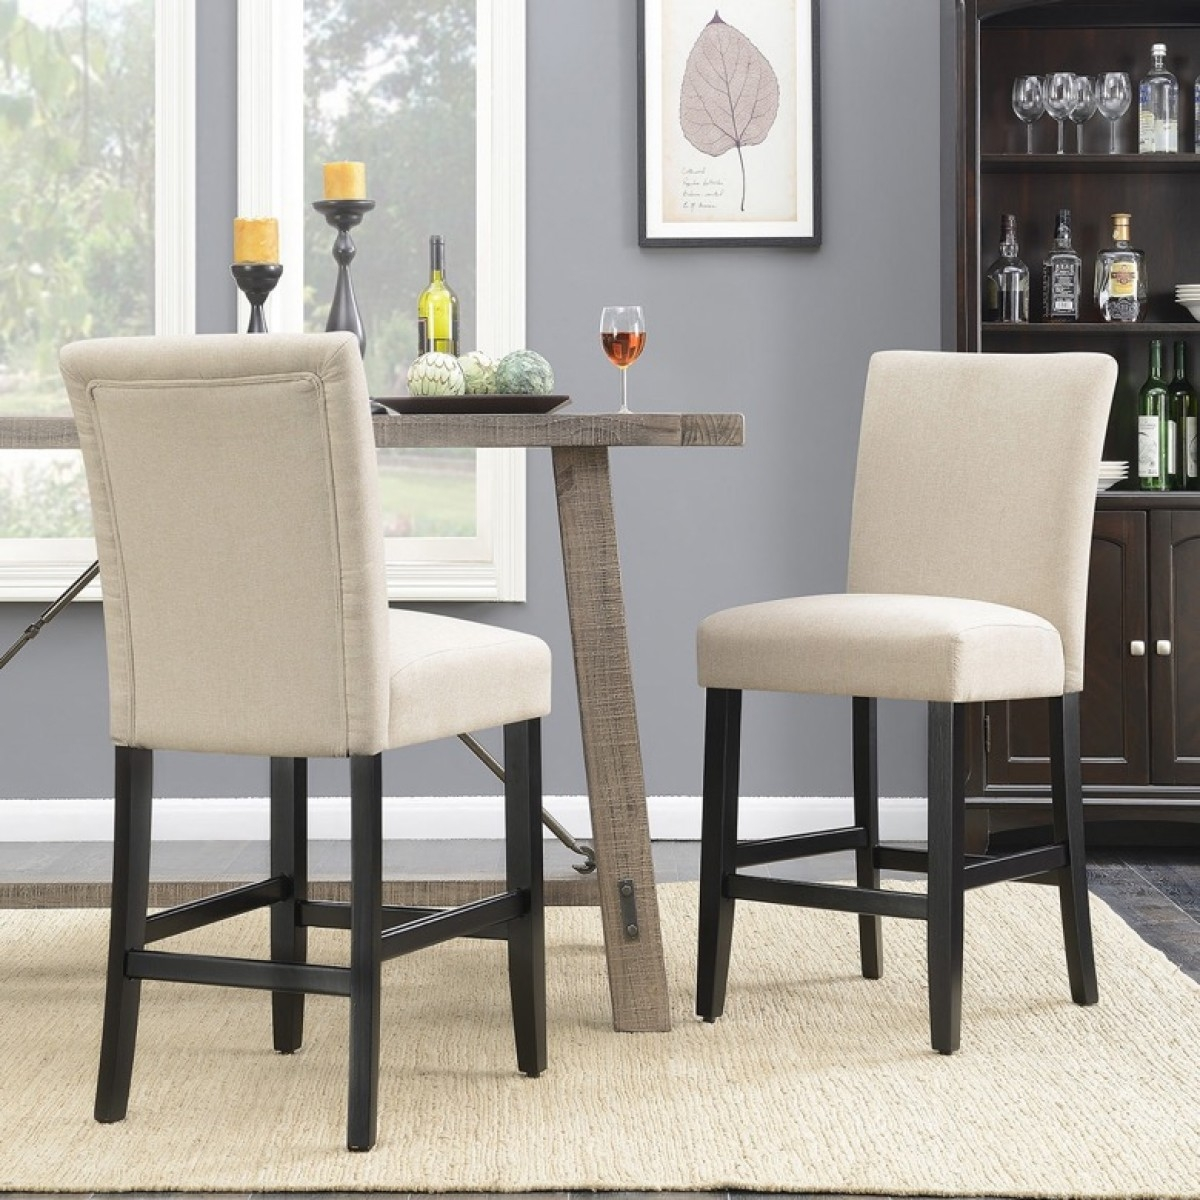 belleze 24 dining chairs fabric kitchen parsons urban style counter